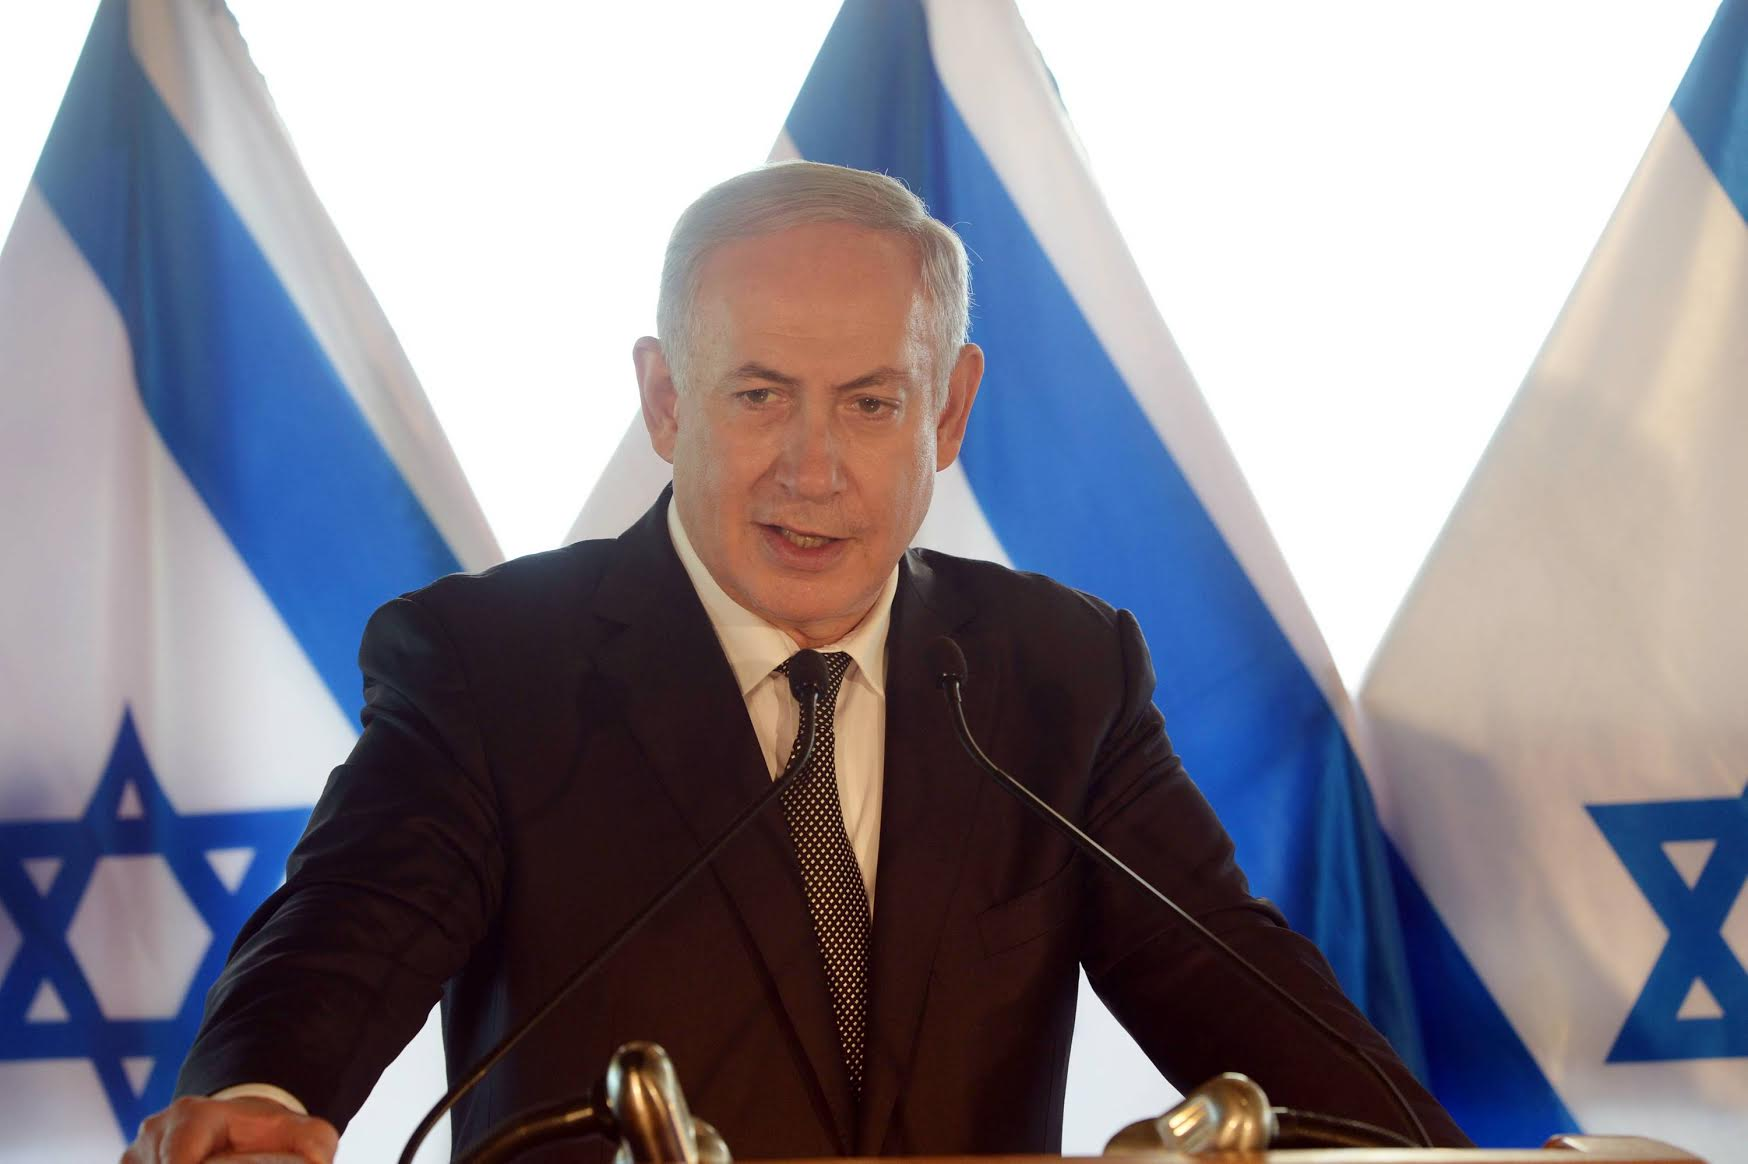 Prime Minister Benjamin Netanyahu holding a Press Conference in Rome, Italy. Crédit photo : Amos Ben-Gershom (GPO)